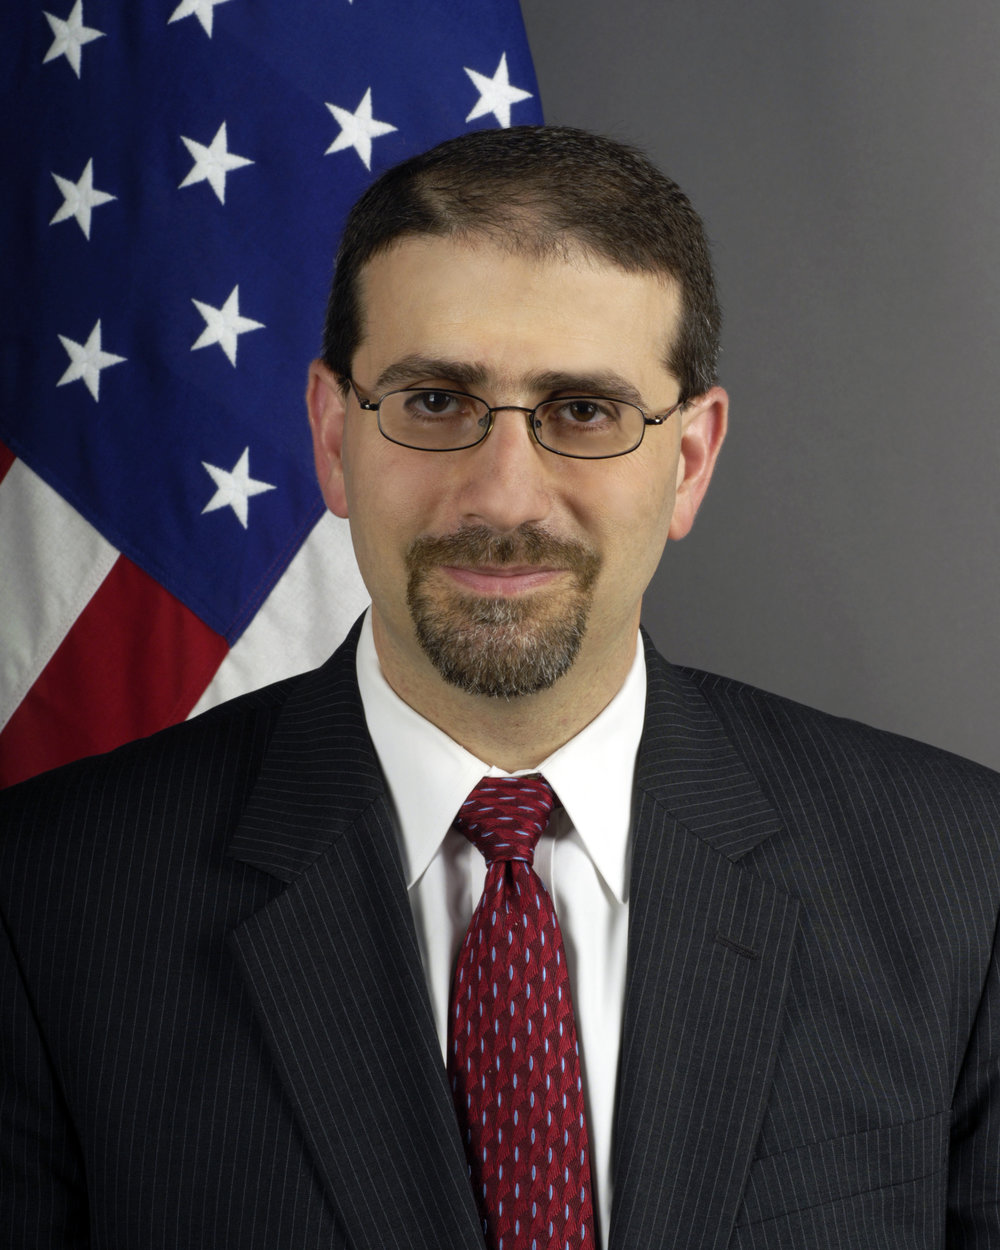 Former U.S. Ambassador to Israel Dan Shapiro. Credit: State Department.